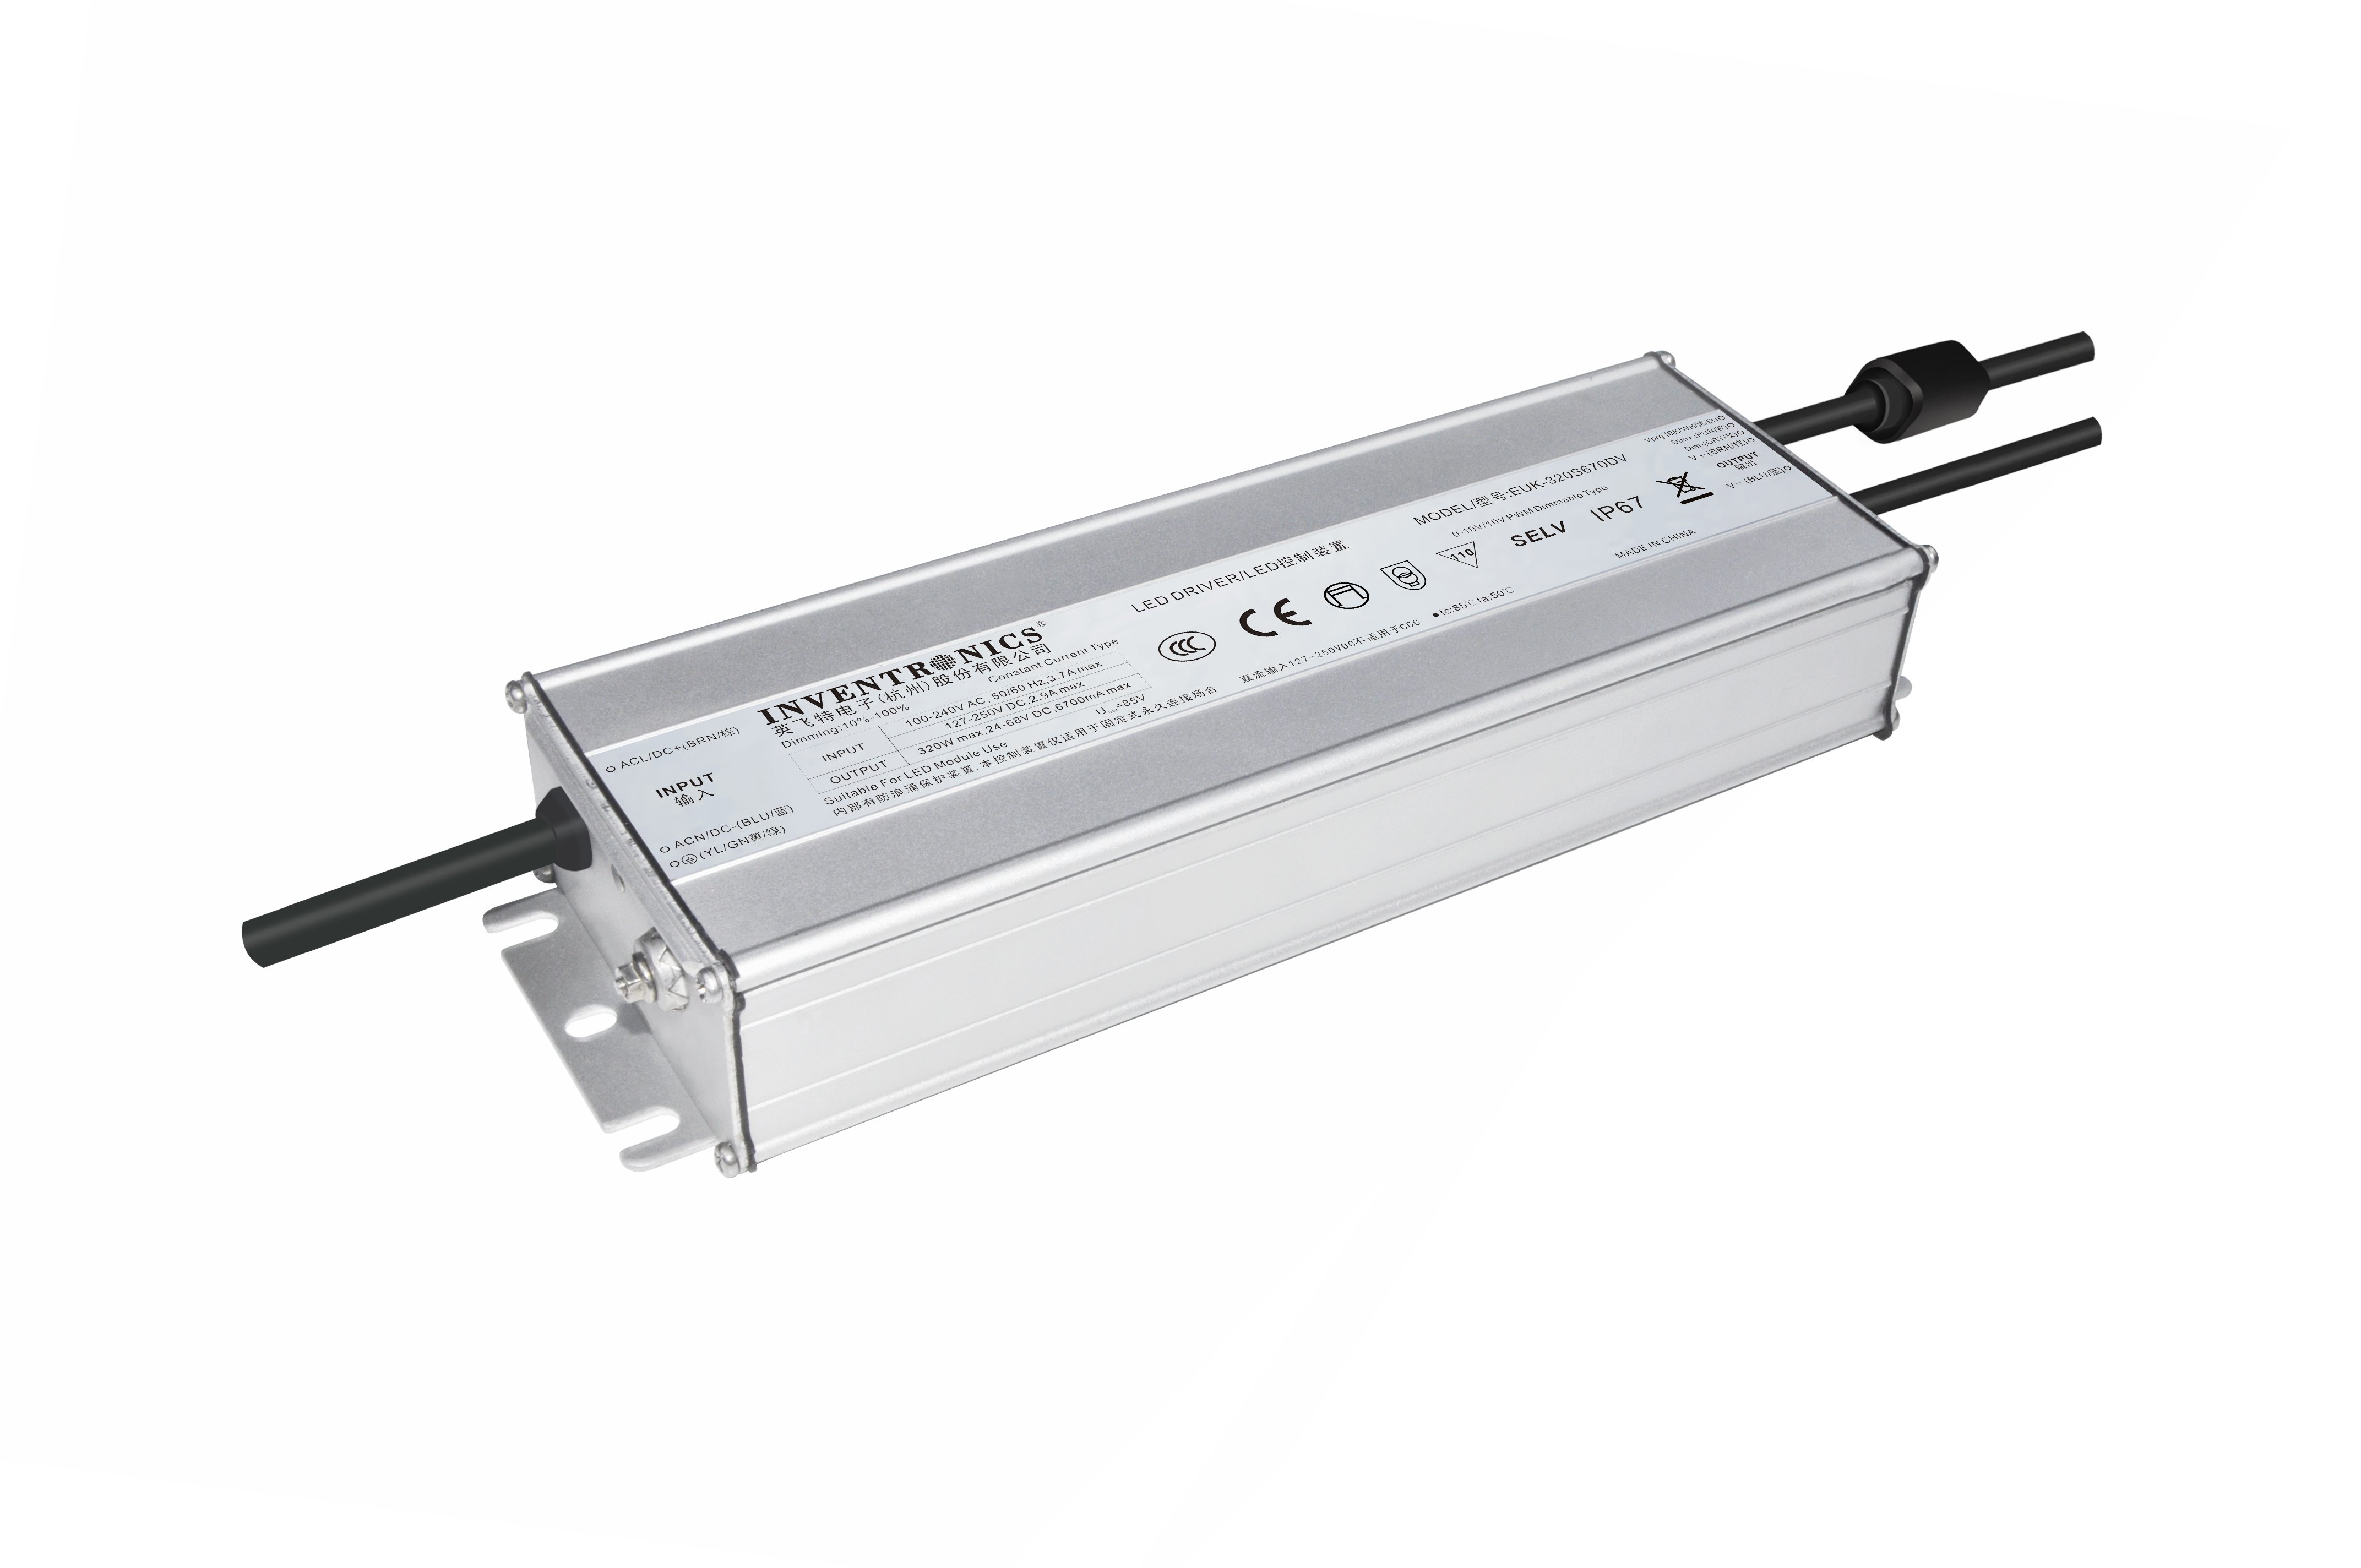 EUK-320W Simplified LED Driver